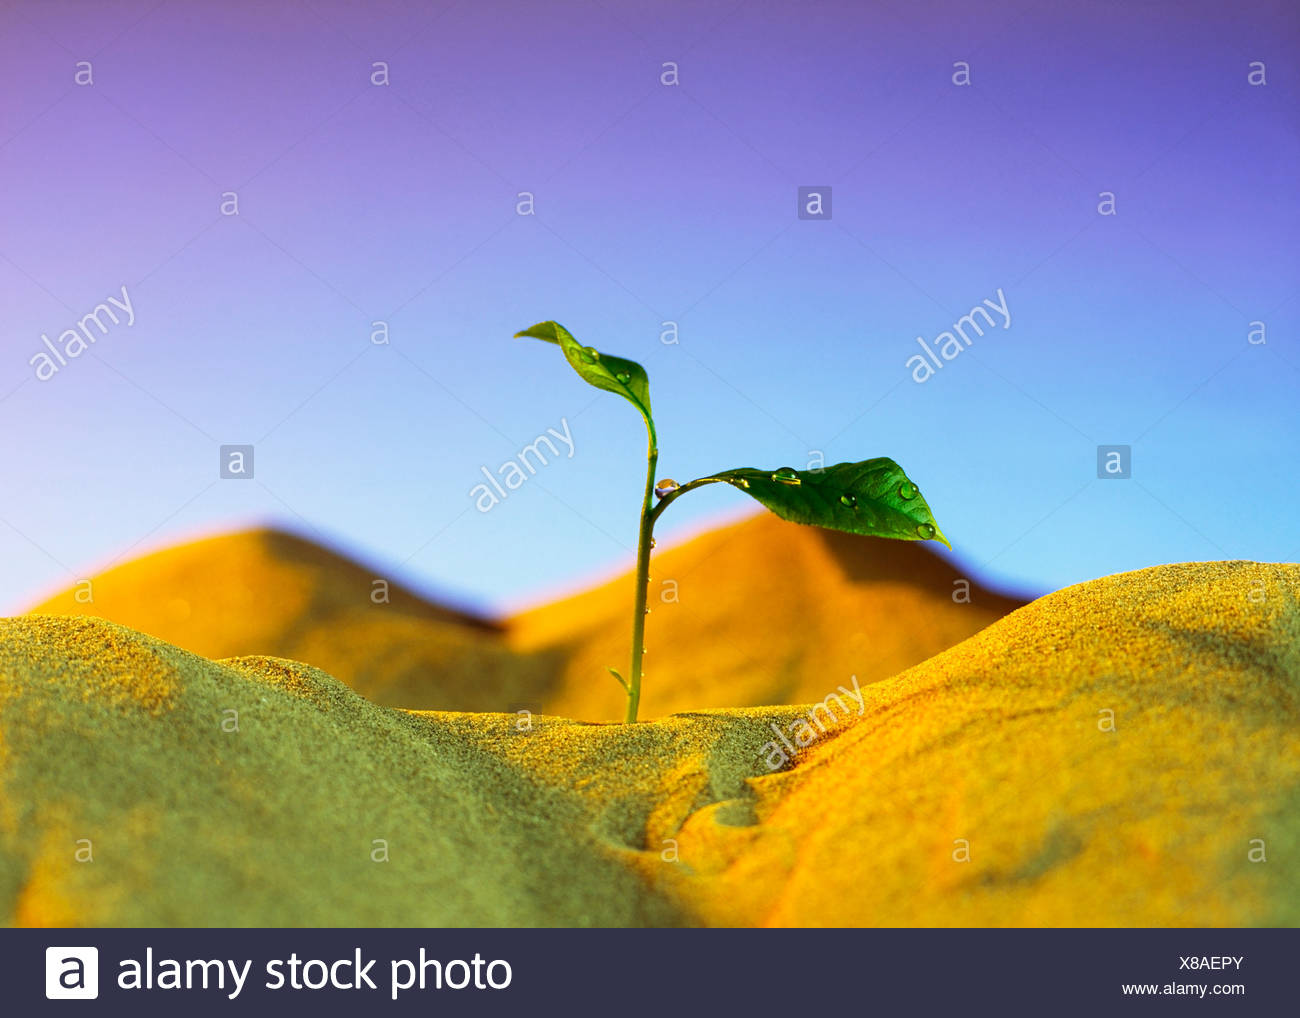 Agriculture, Seedling - Stock Image